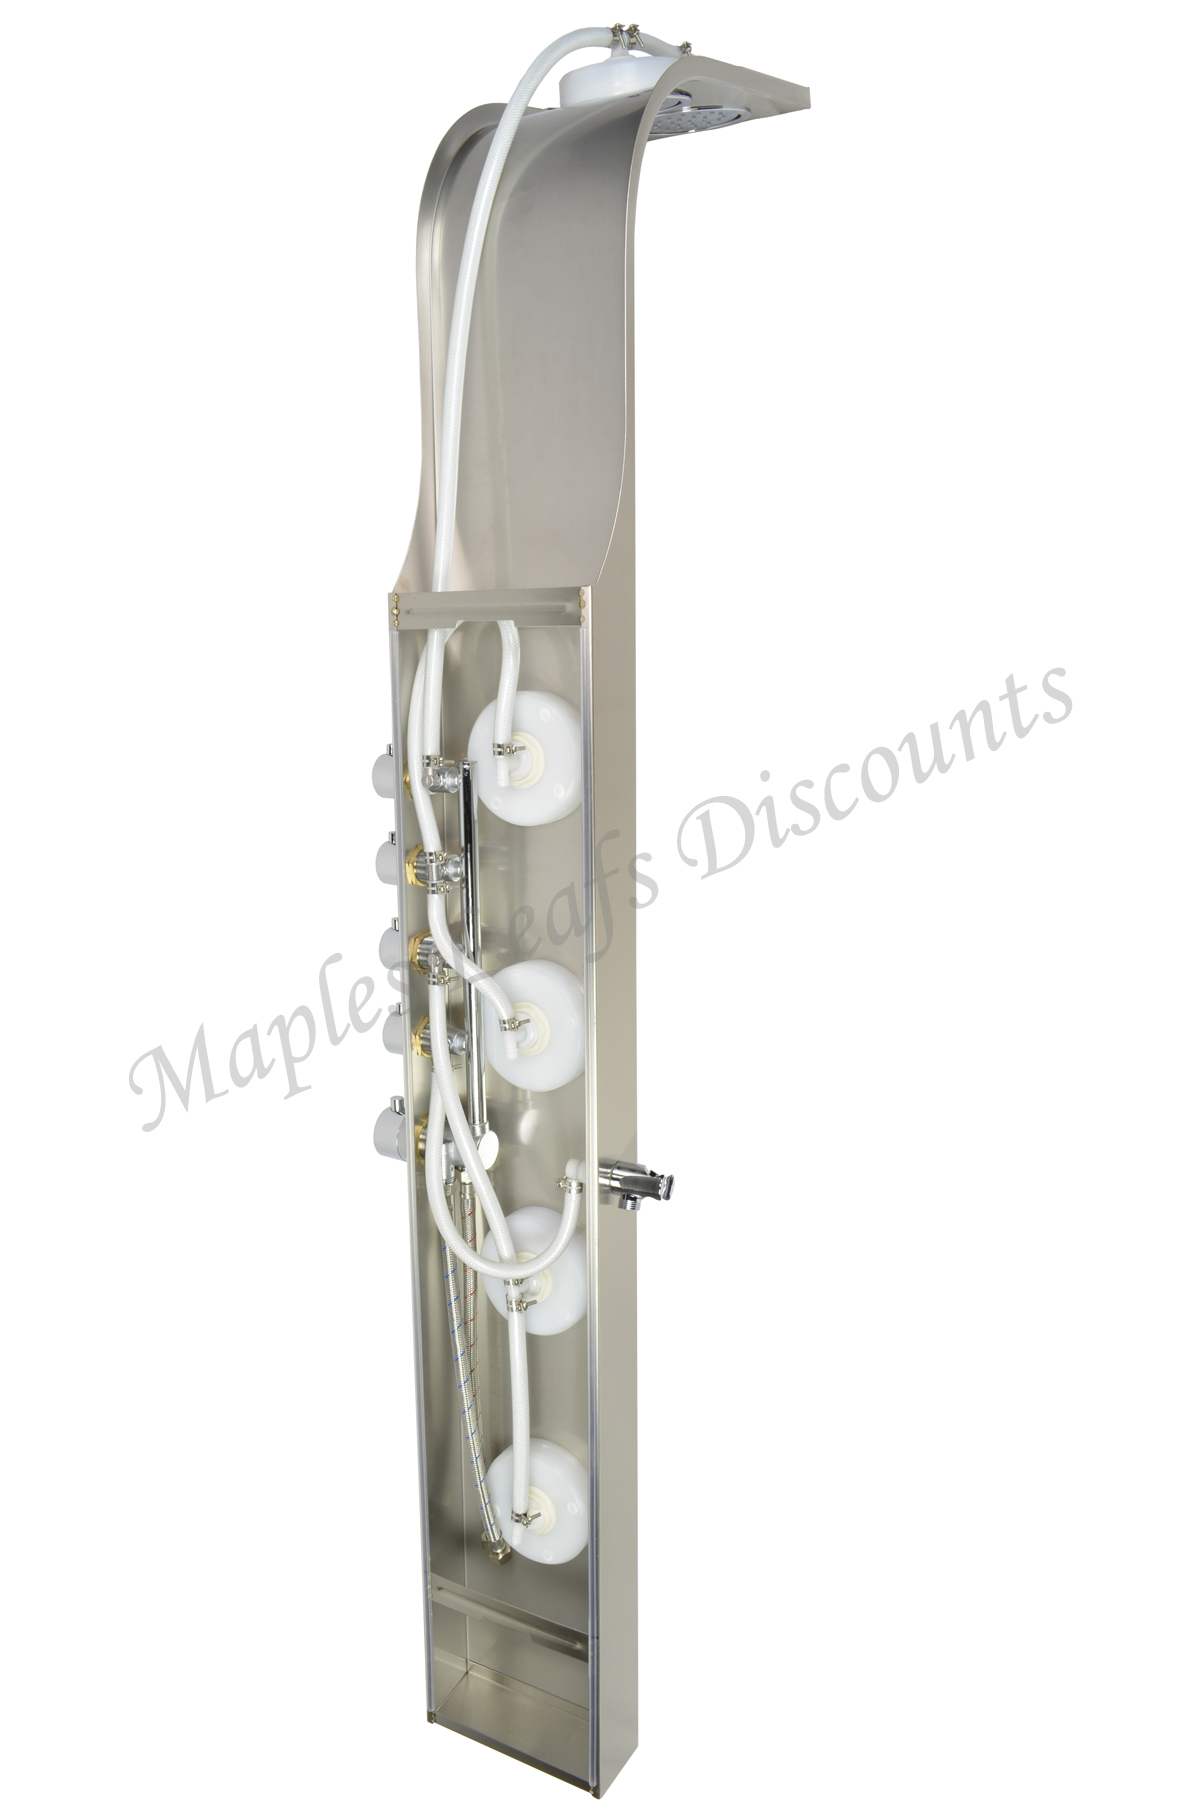 Stainless steel shower tower head thermostatic control for Shower tower with body jets